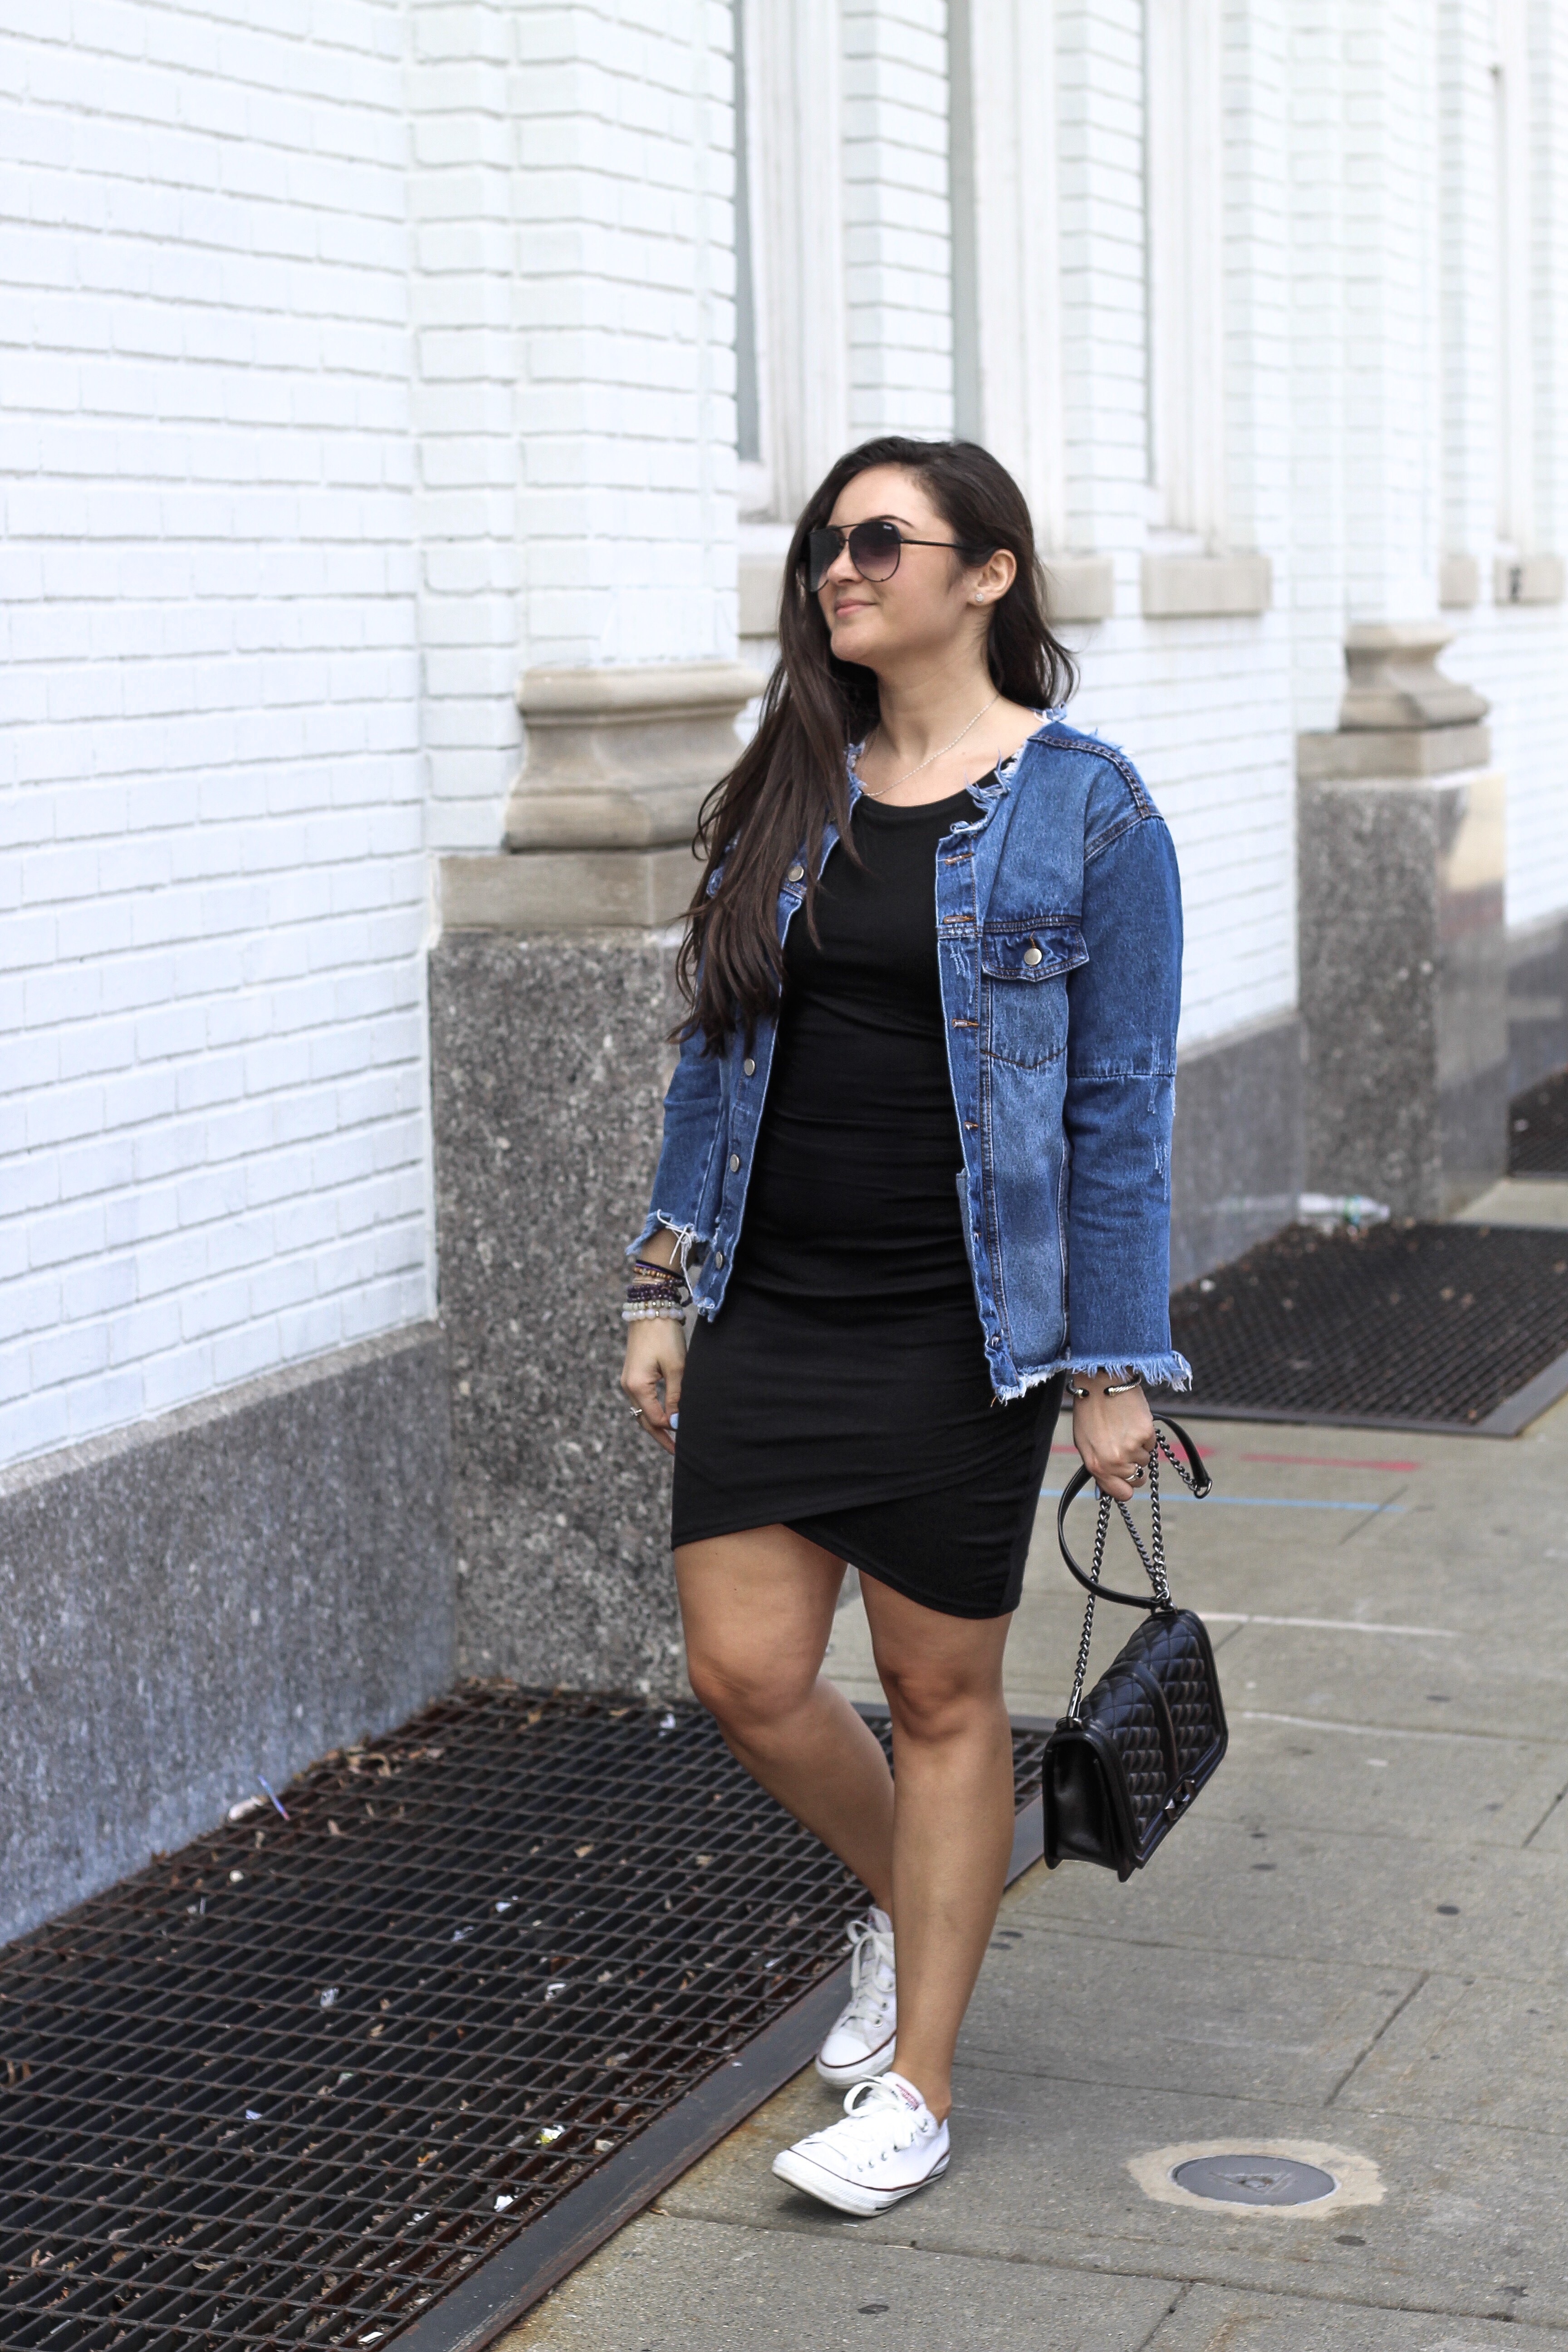 9e8da8f95ceb7 One of my favorite ways to style a little black dress is to dress it down  casually. I love sporting my over-loved converse (just a nice way to say  VERY used ...